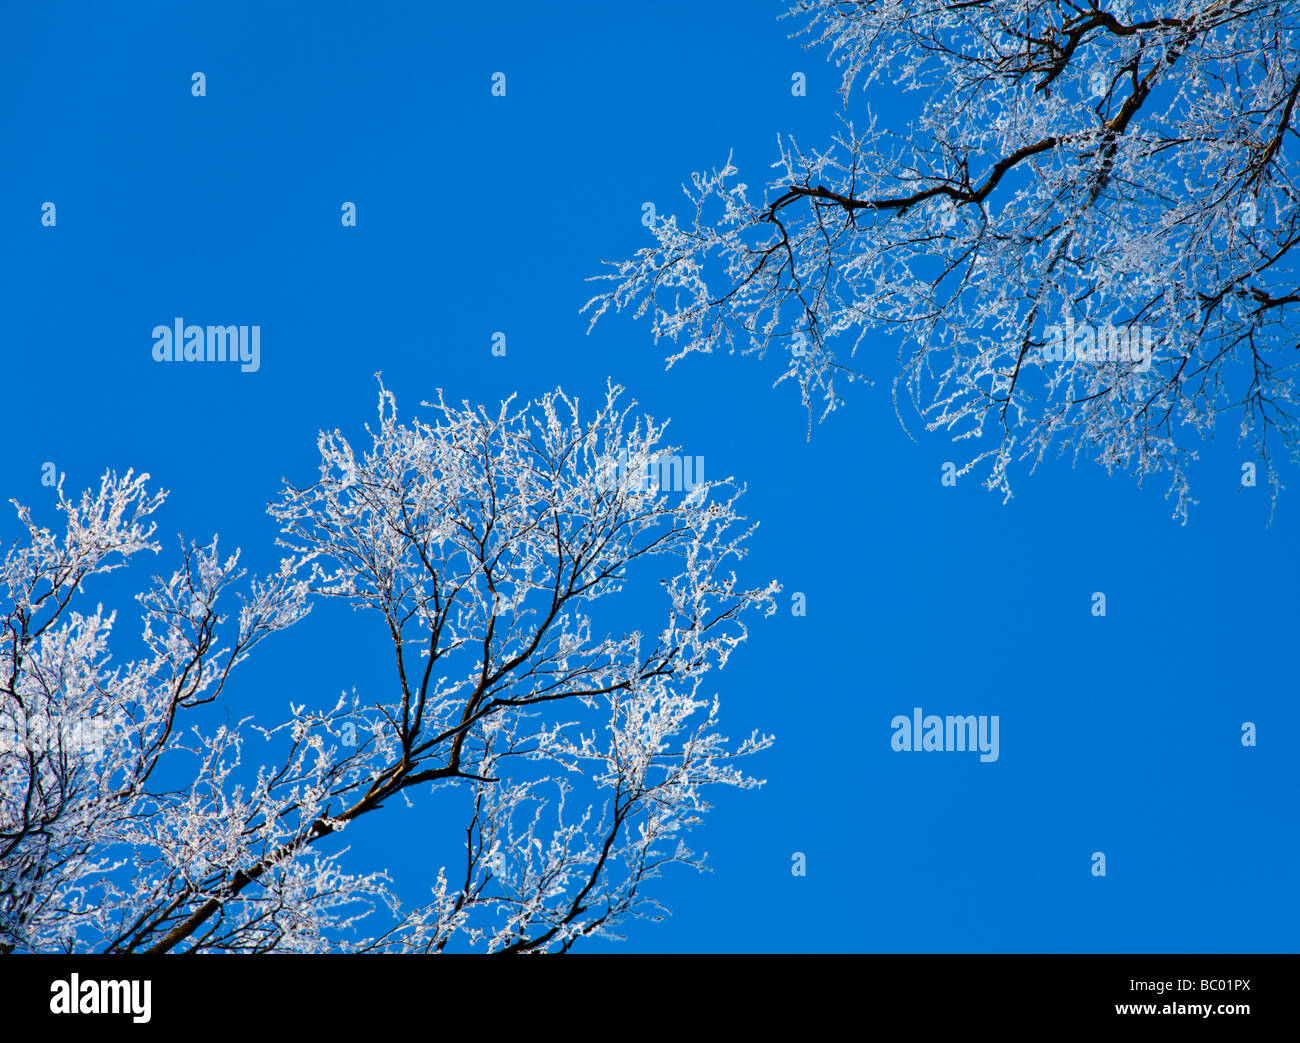 Trees in winter with hoar frost - Stock Image